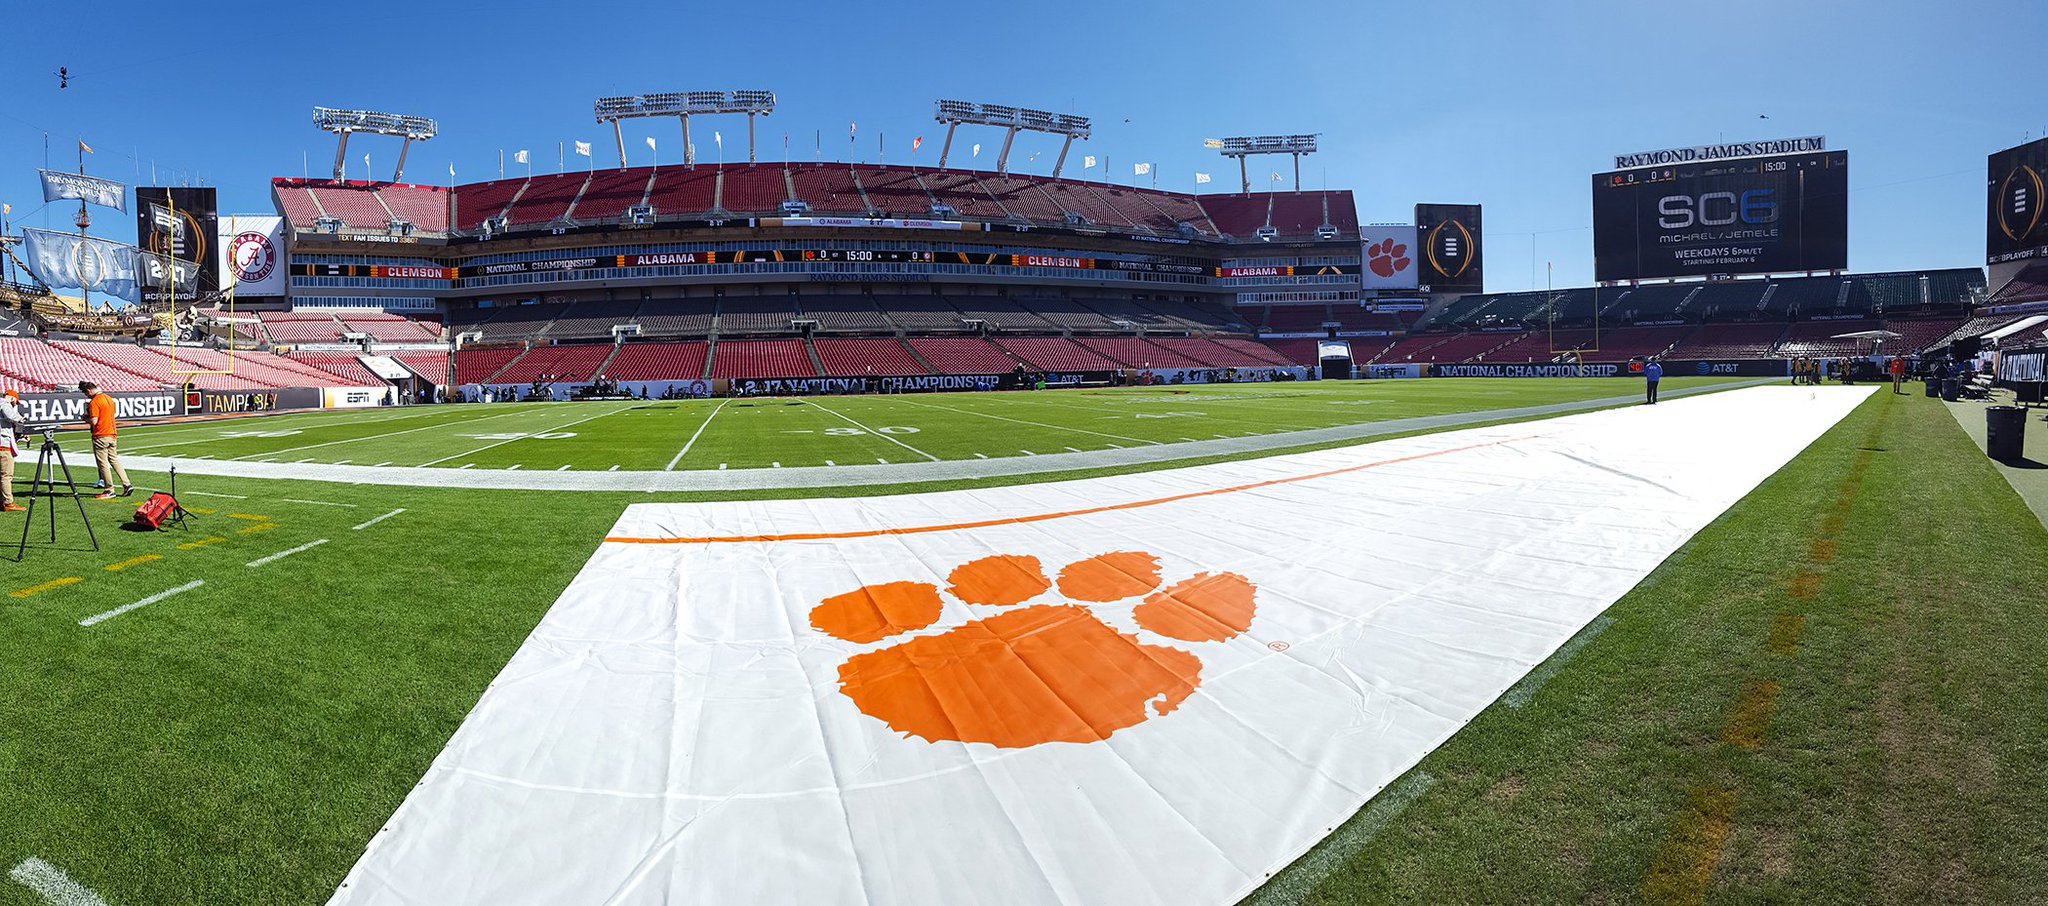 6.5 hours. #Clemson #ALLIN https://t.co/dmbR1sR0C4